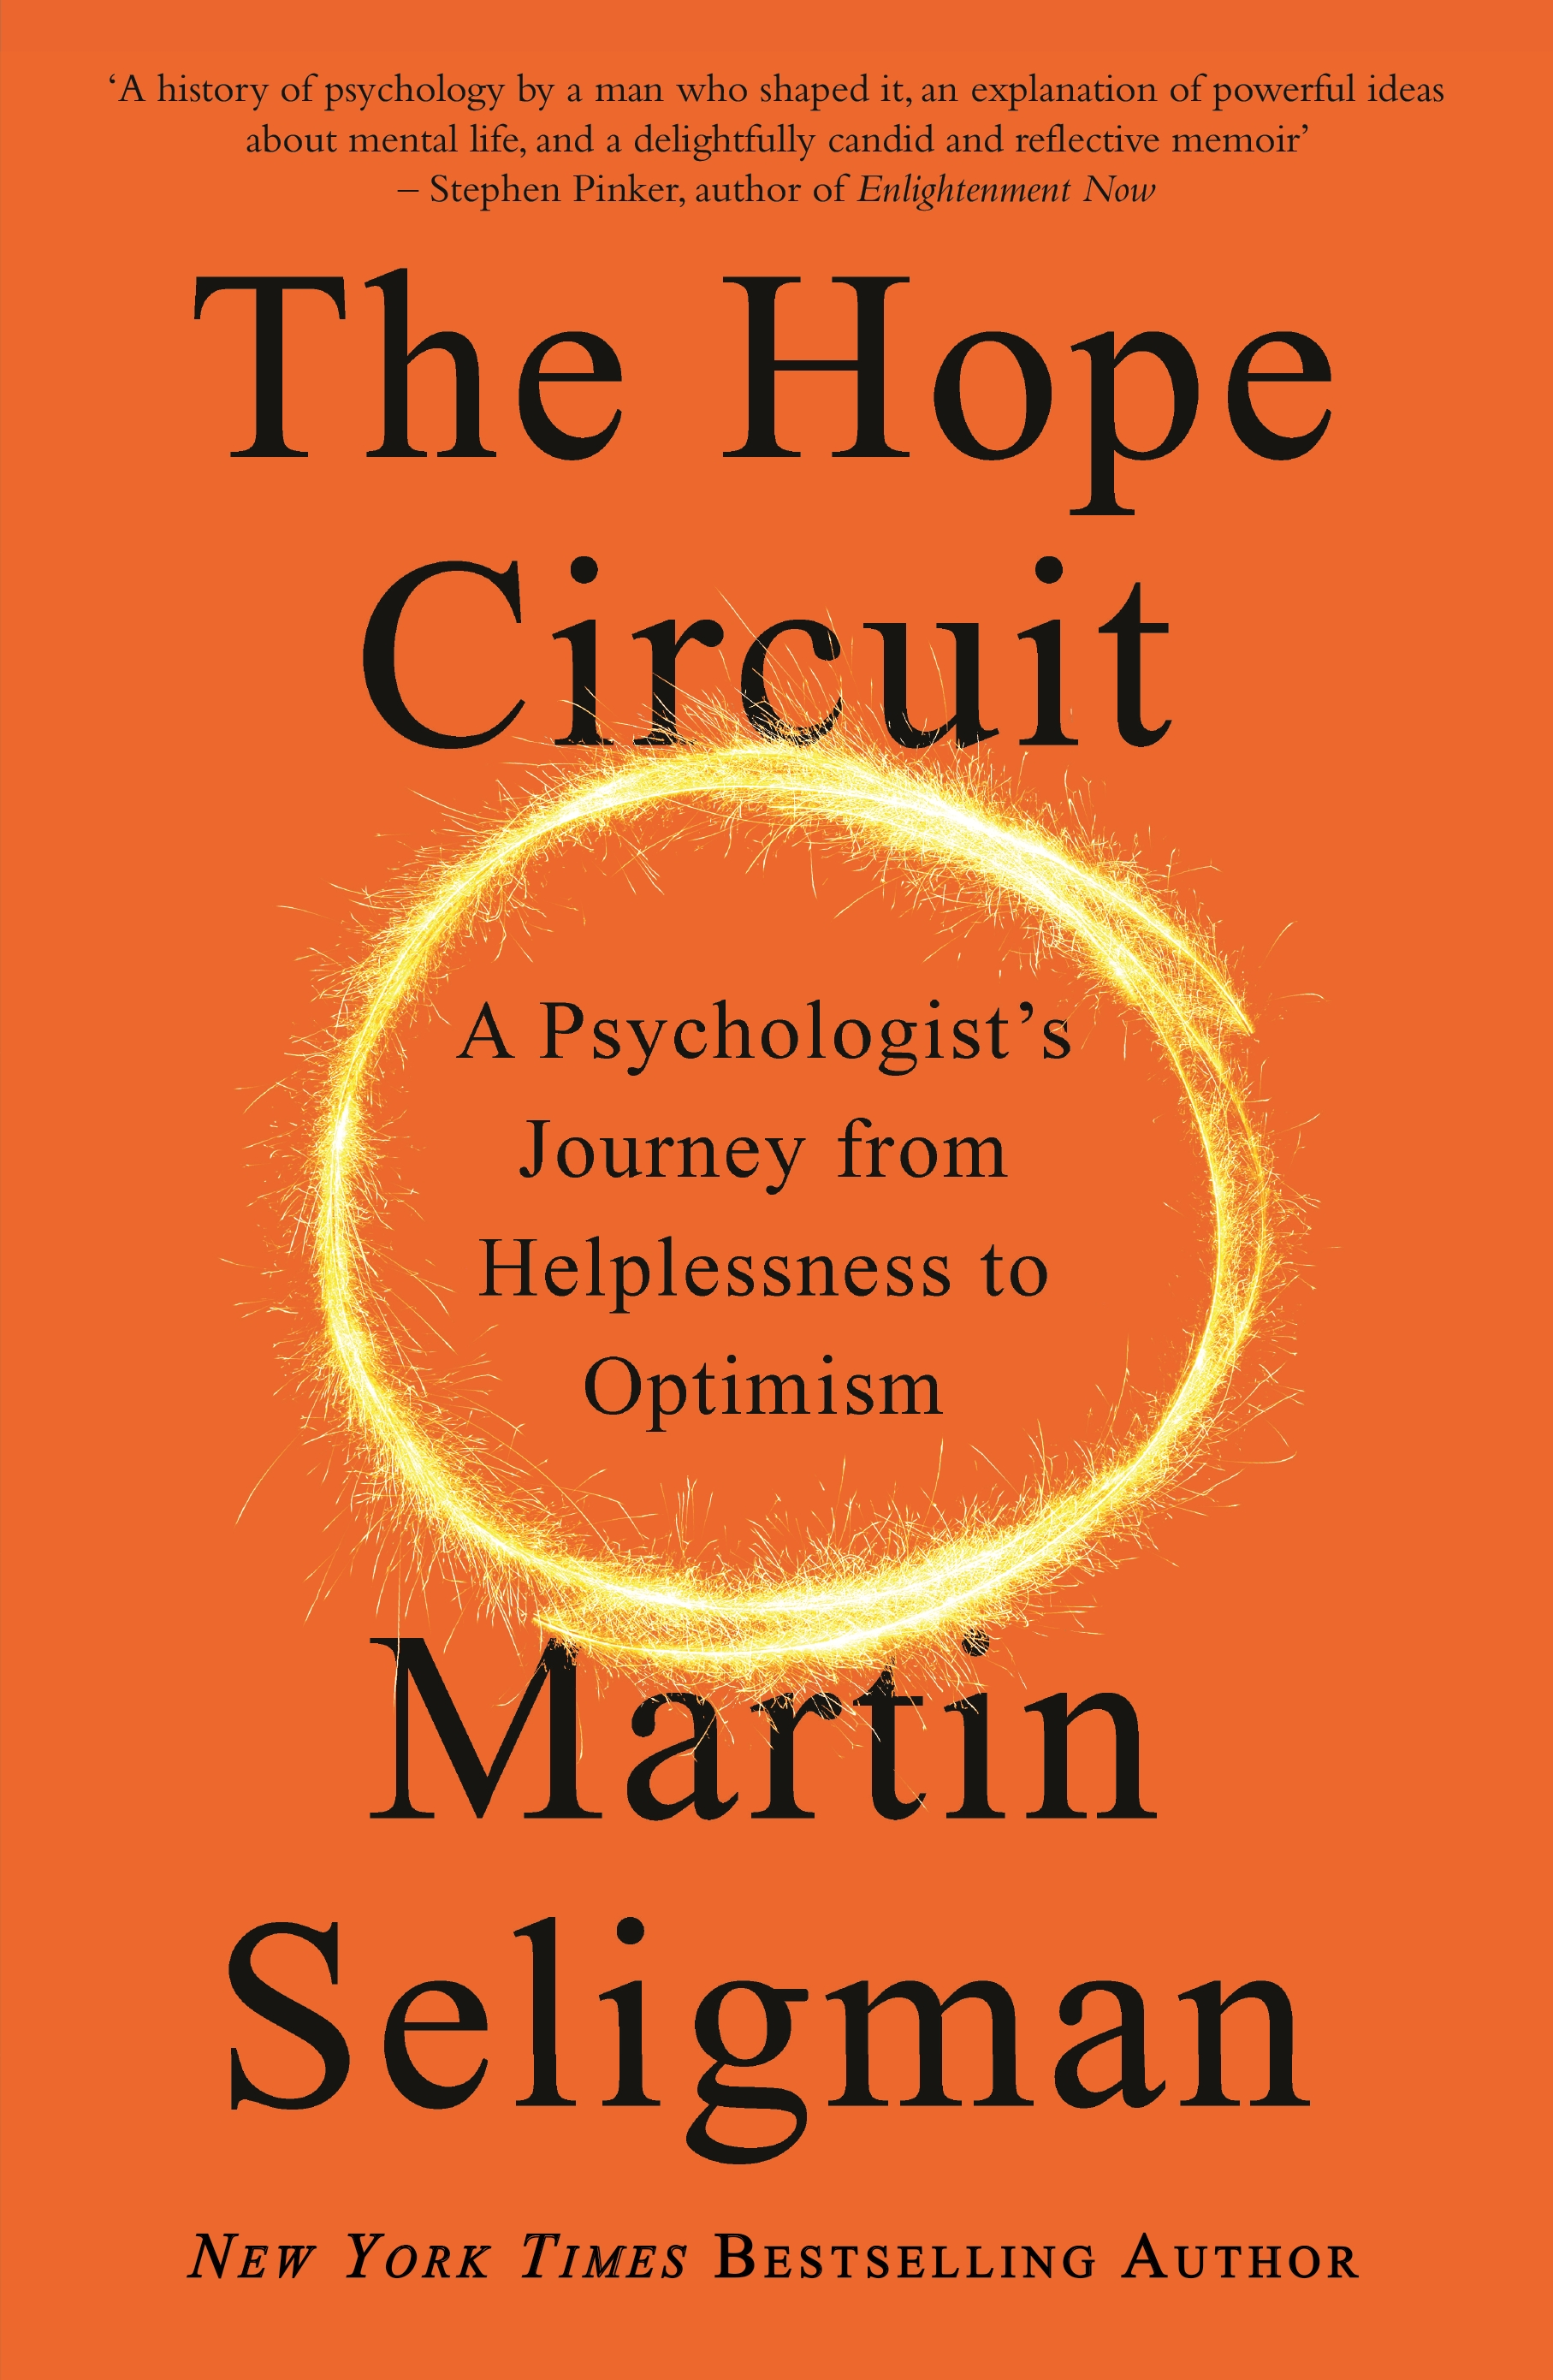 the hope circuit by martin seligman